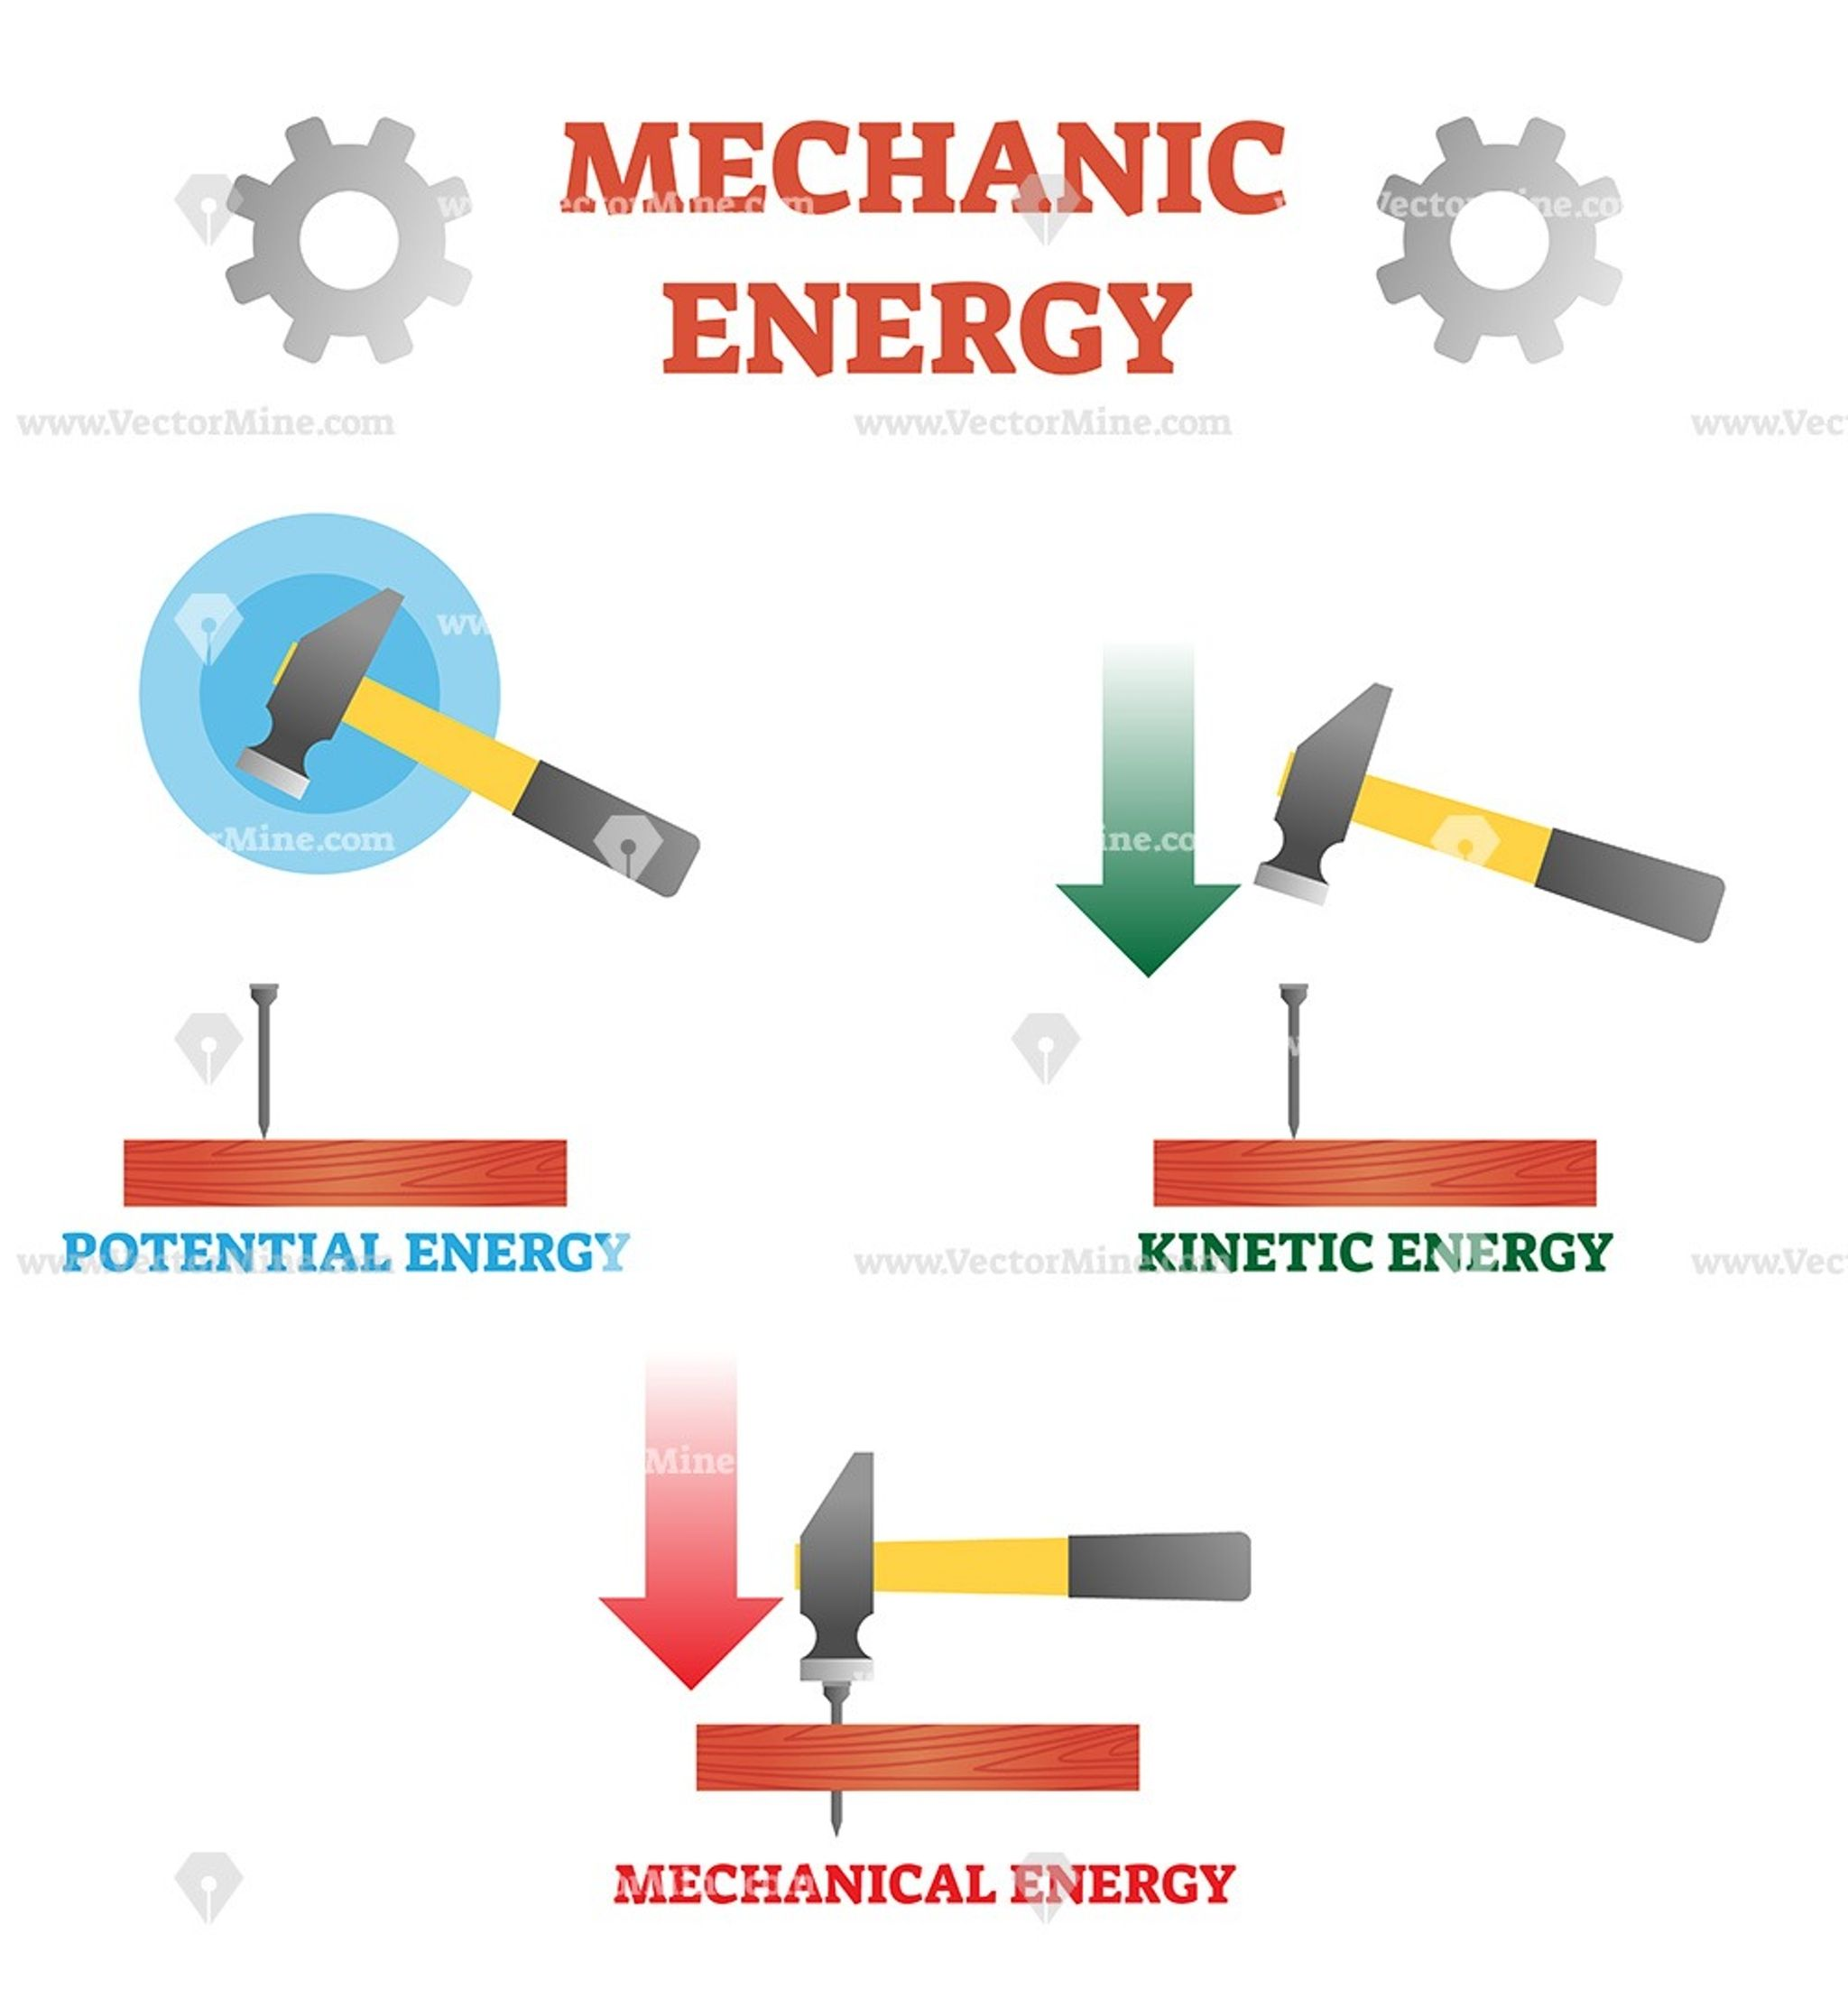 Mechanic Energy Physics Explanation Vector Illustration Physics Physics Lessons Kinetic And Potential Energy